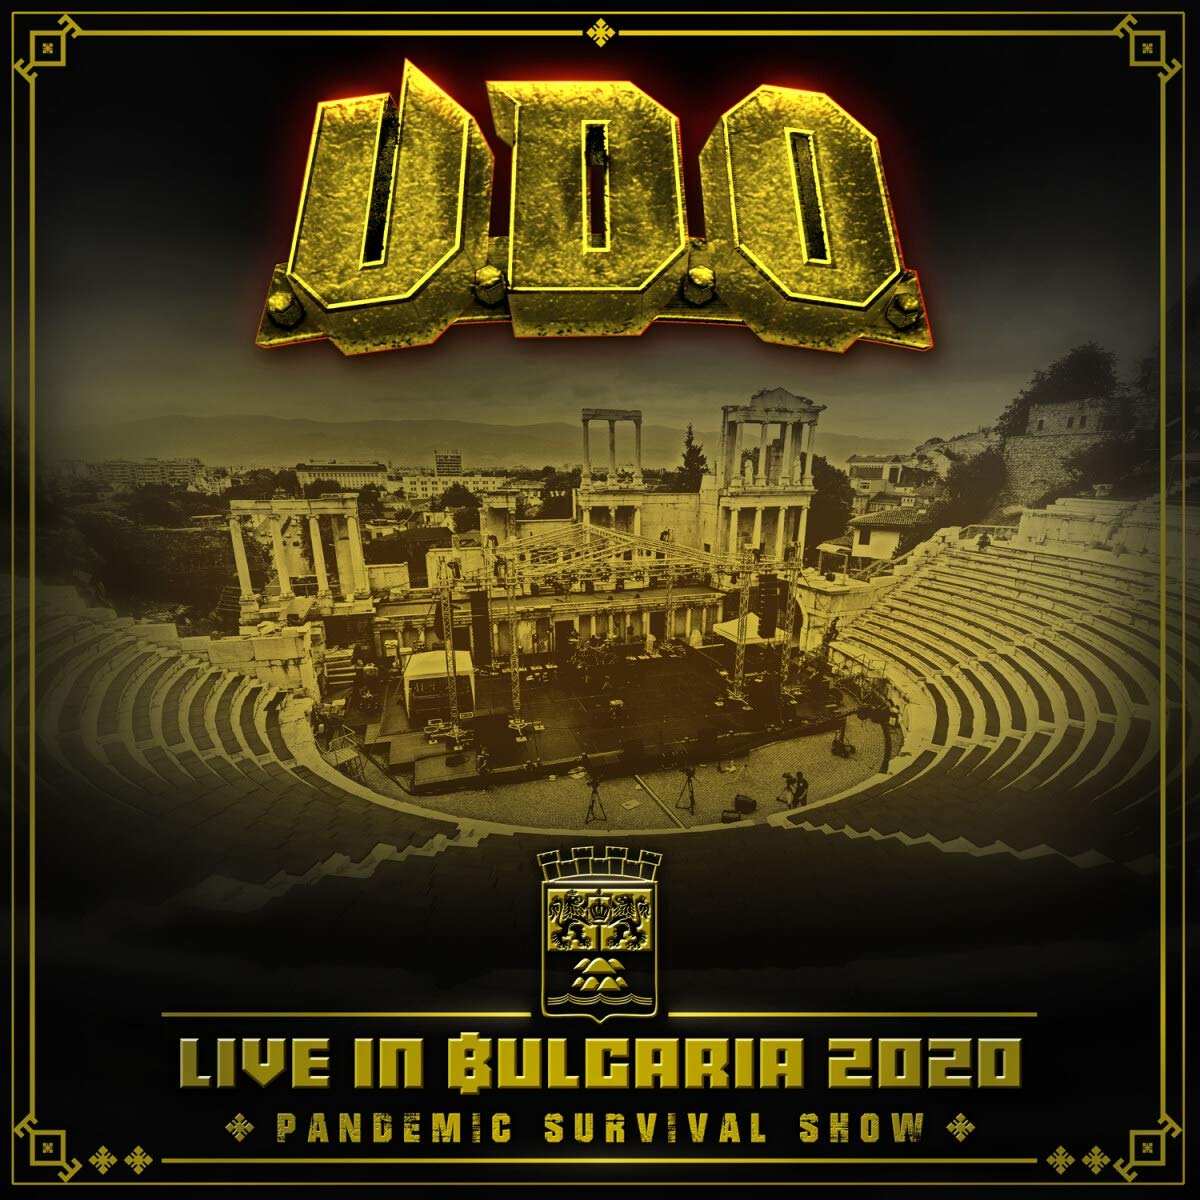 Live in Bulgaria 2020 Pandemic Survival Show BluRay /& 2 CD